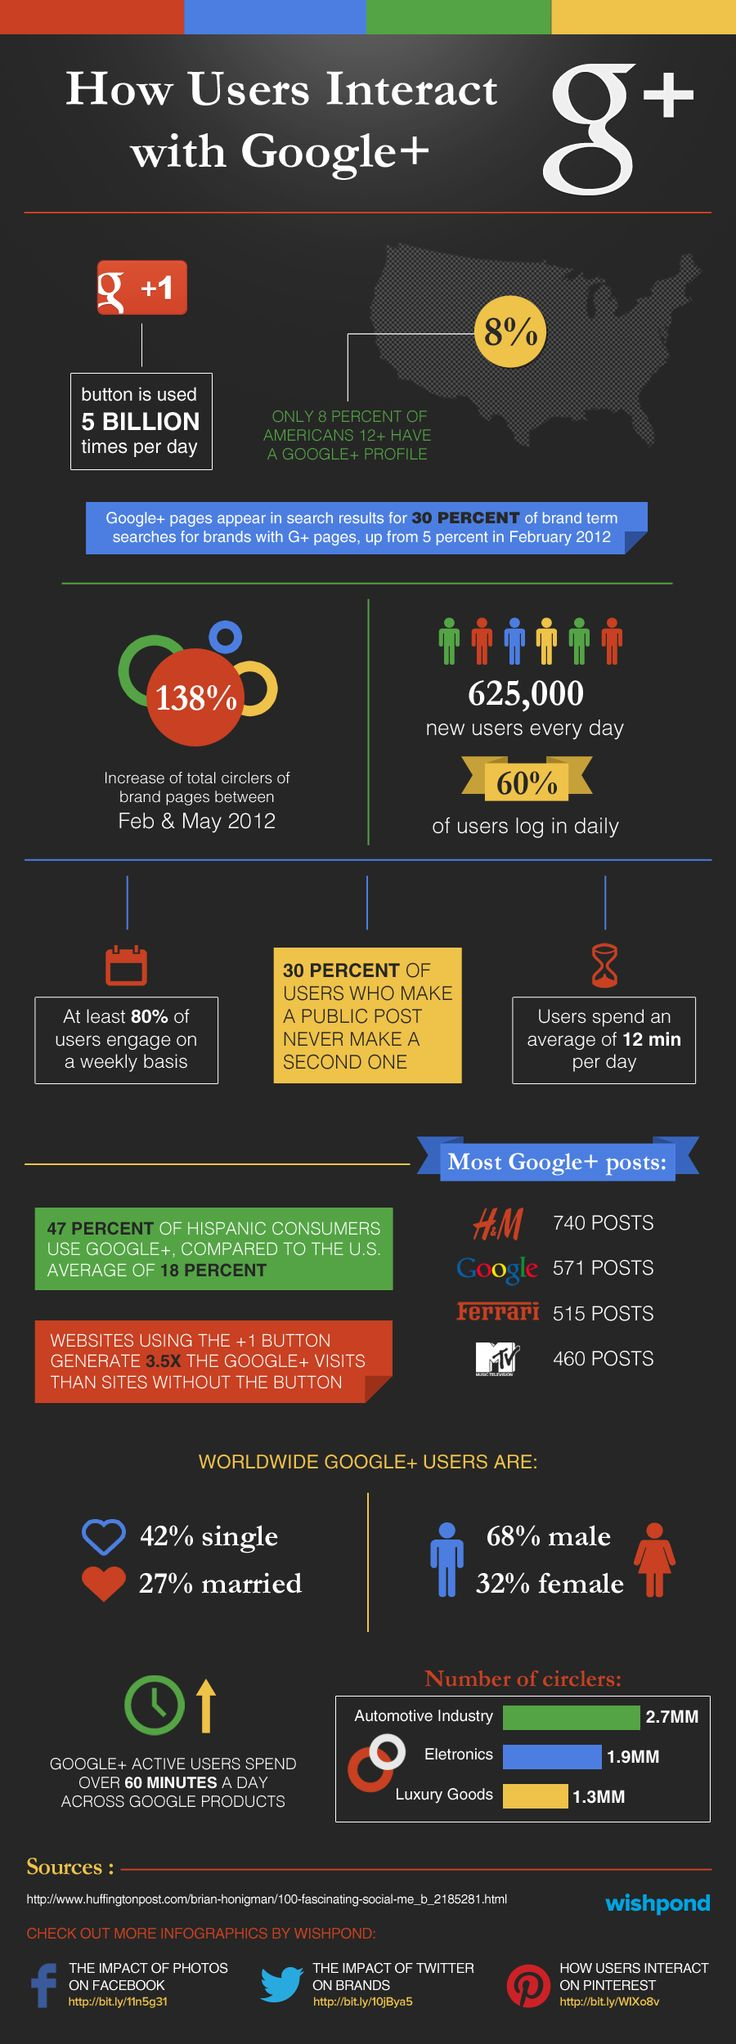 [Infographic] How Users Interact with Google+